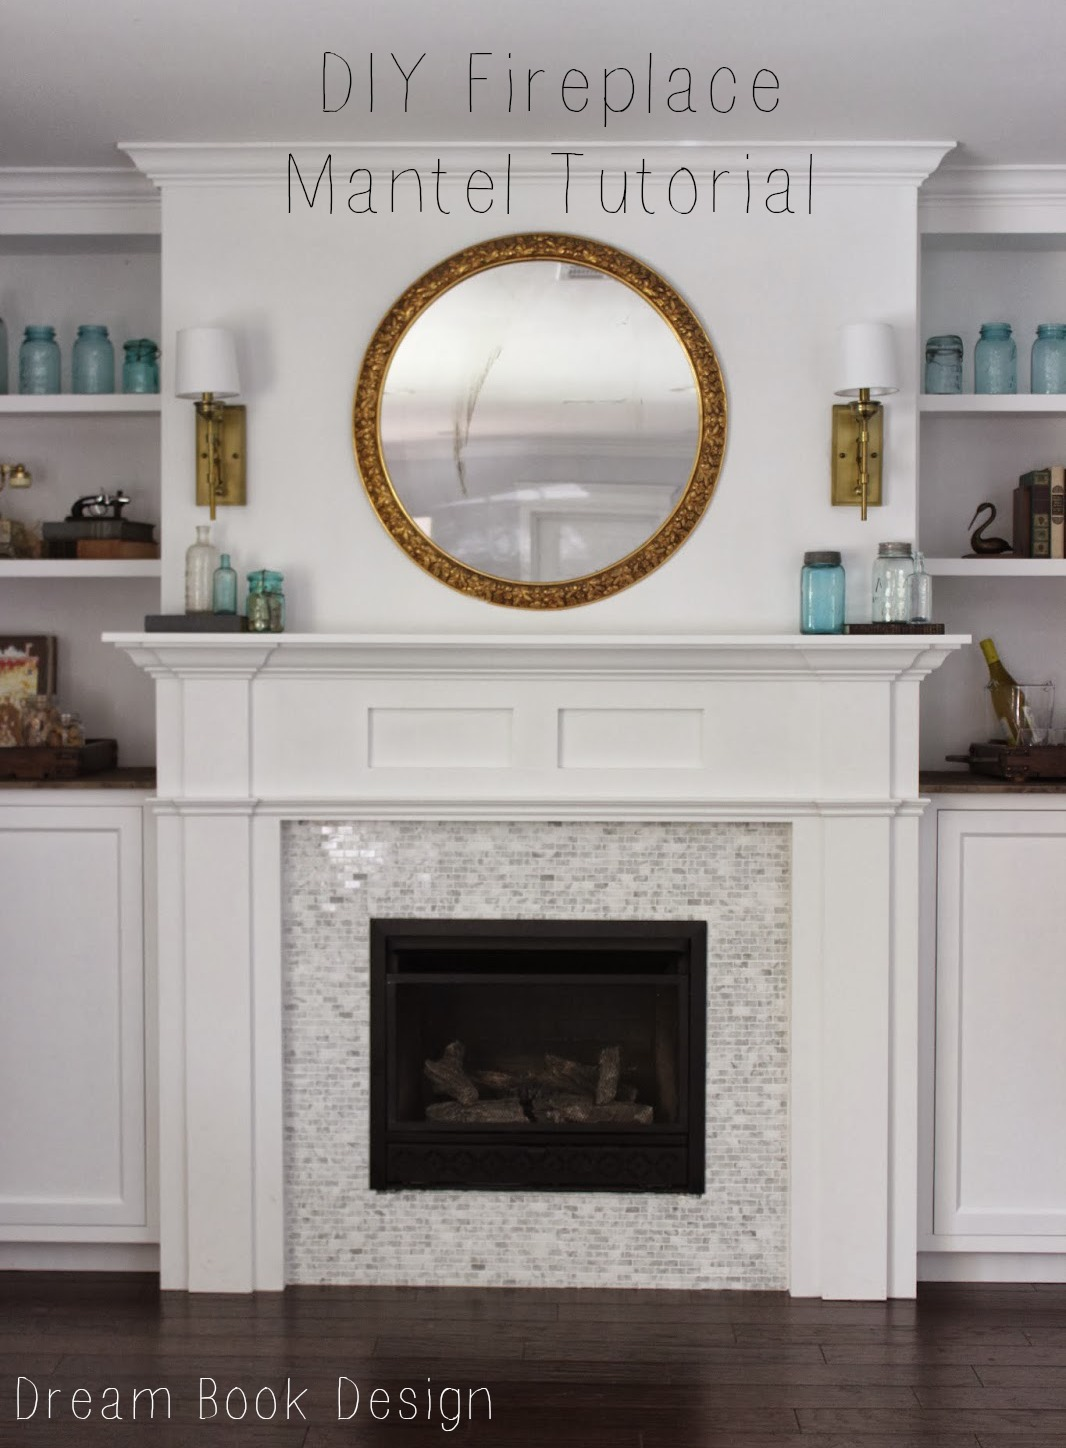 Diy fireplace mantel tutorial dream book design for Design your own fireplace